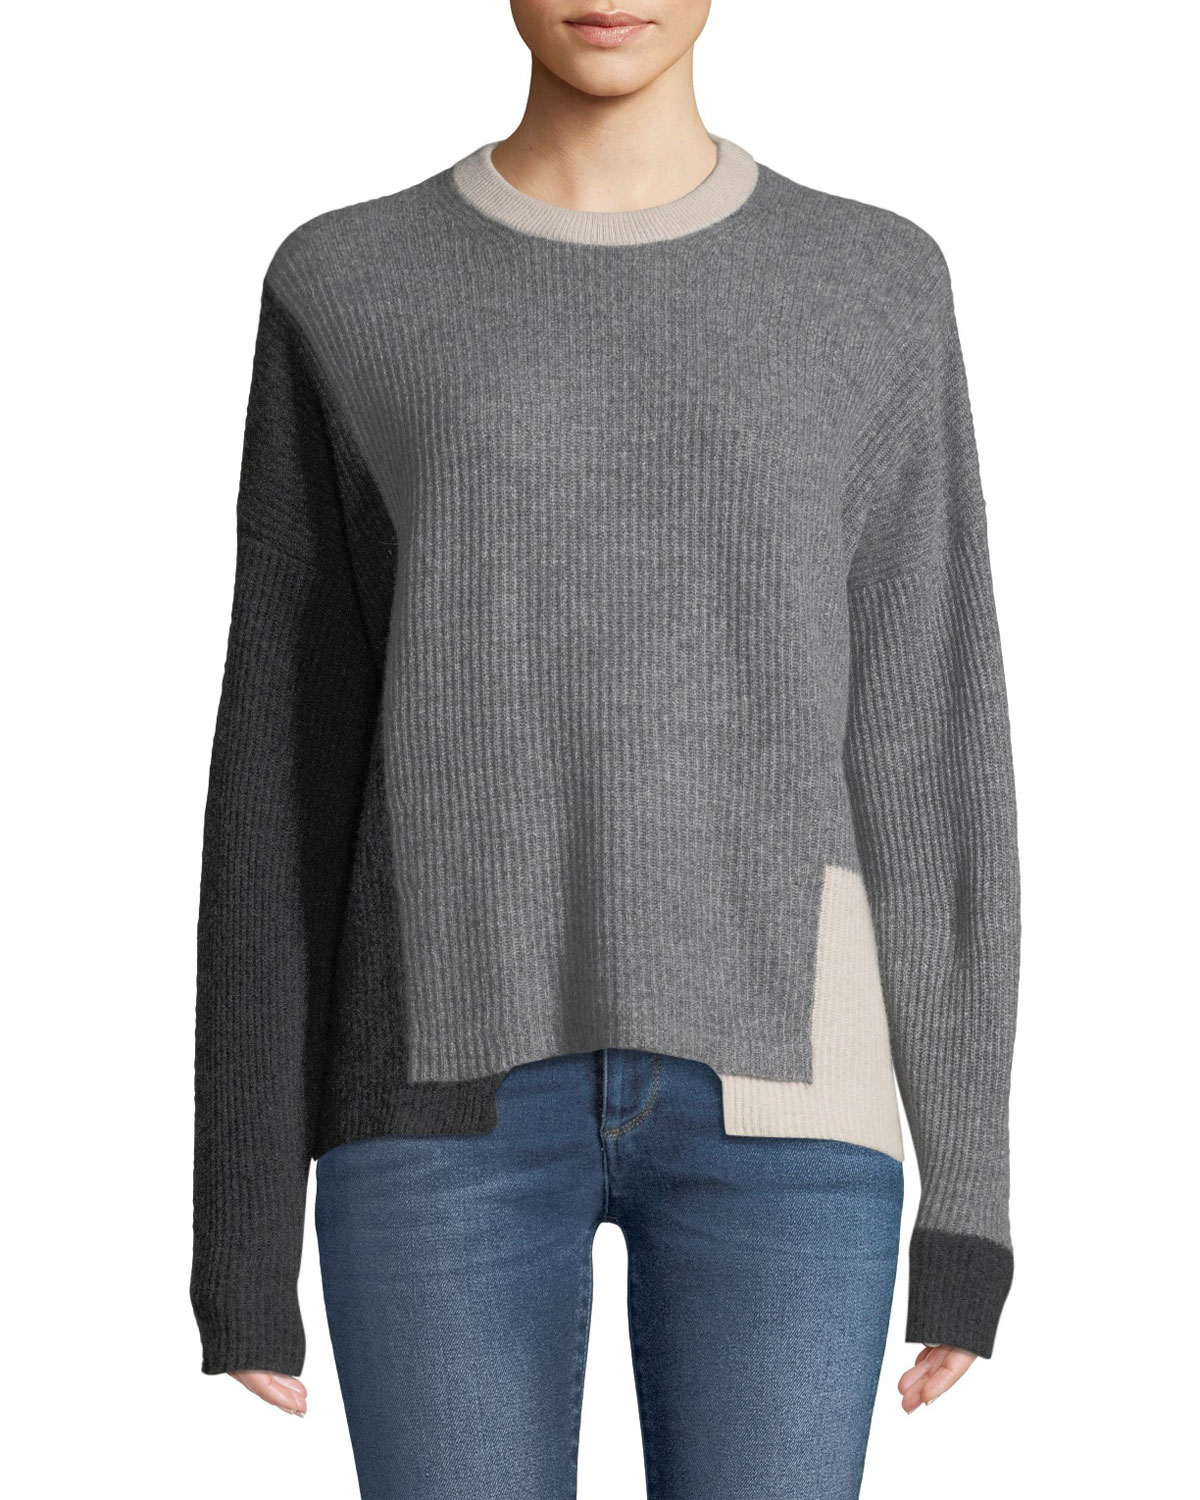 360 SWEATER AKIMA CREWNECK COLORBLOCKED RIBBED CASHMERE PULLOVER SWEATER